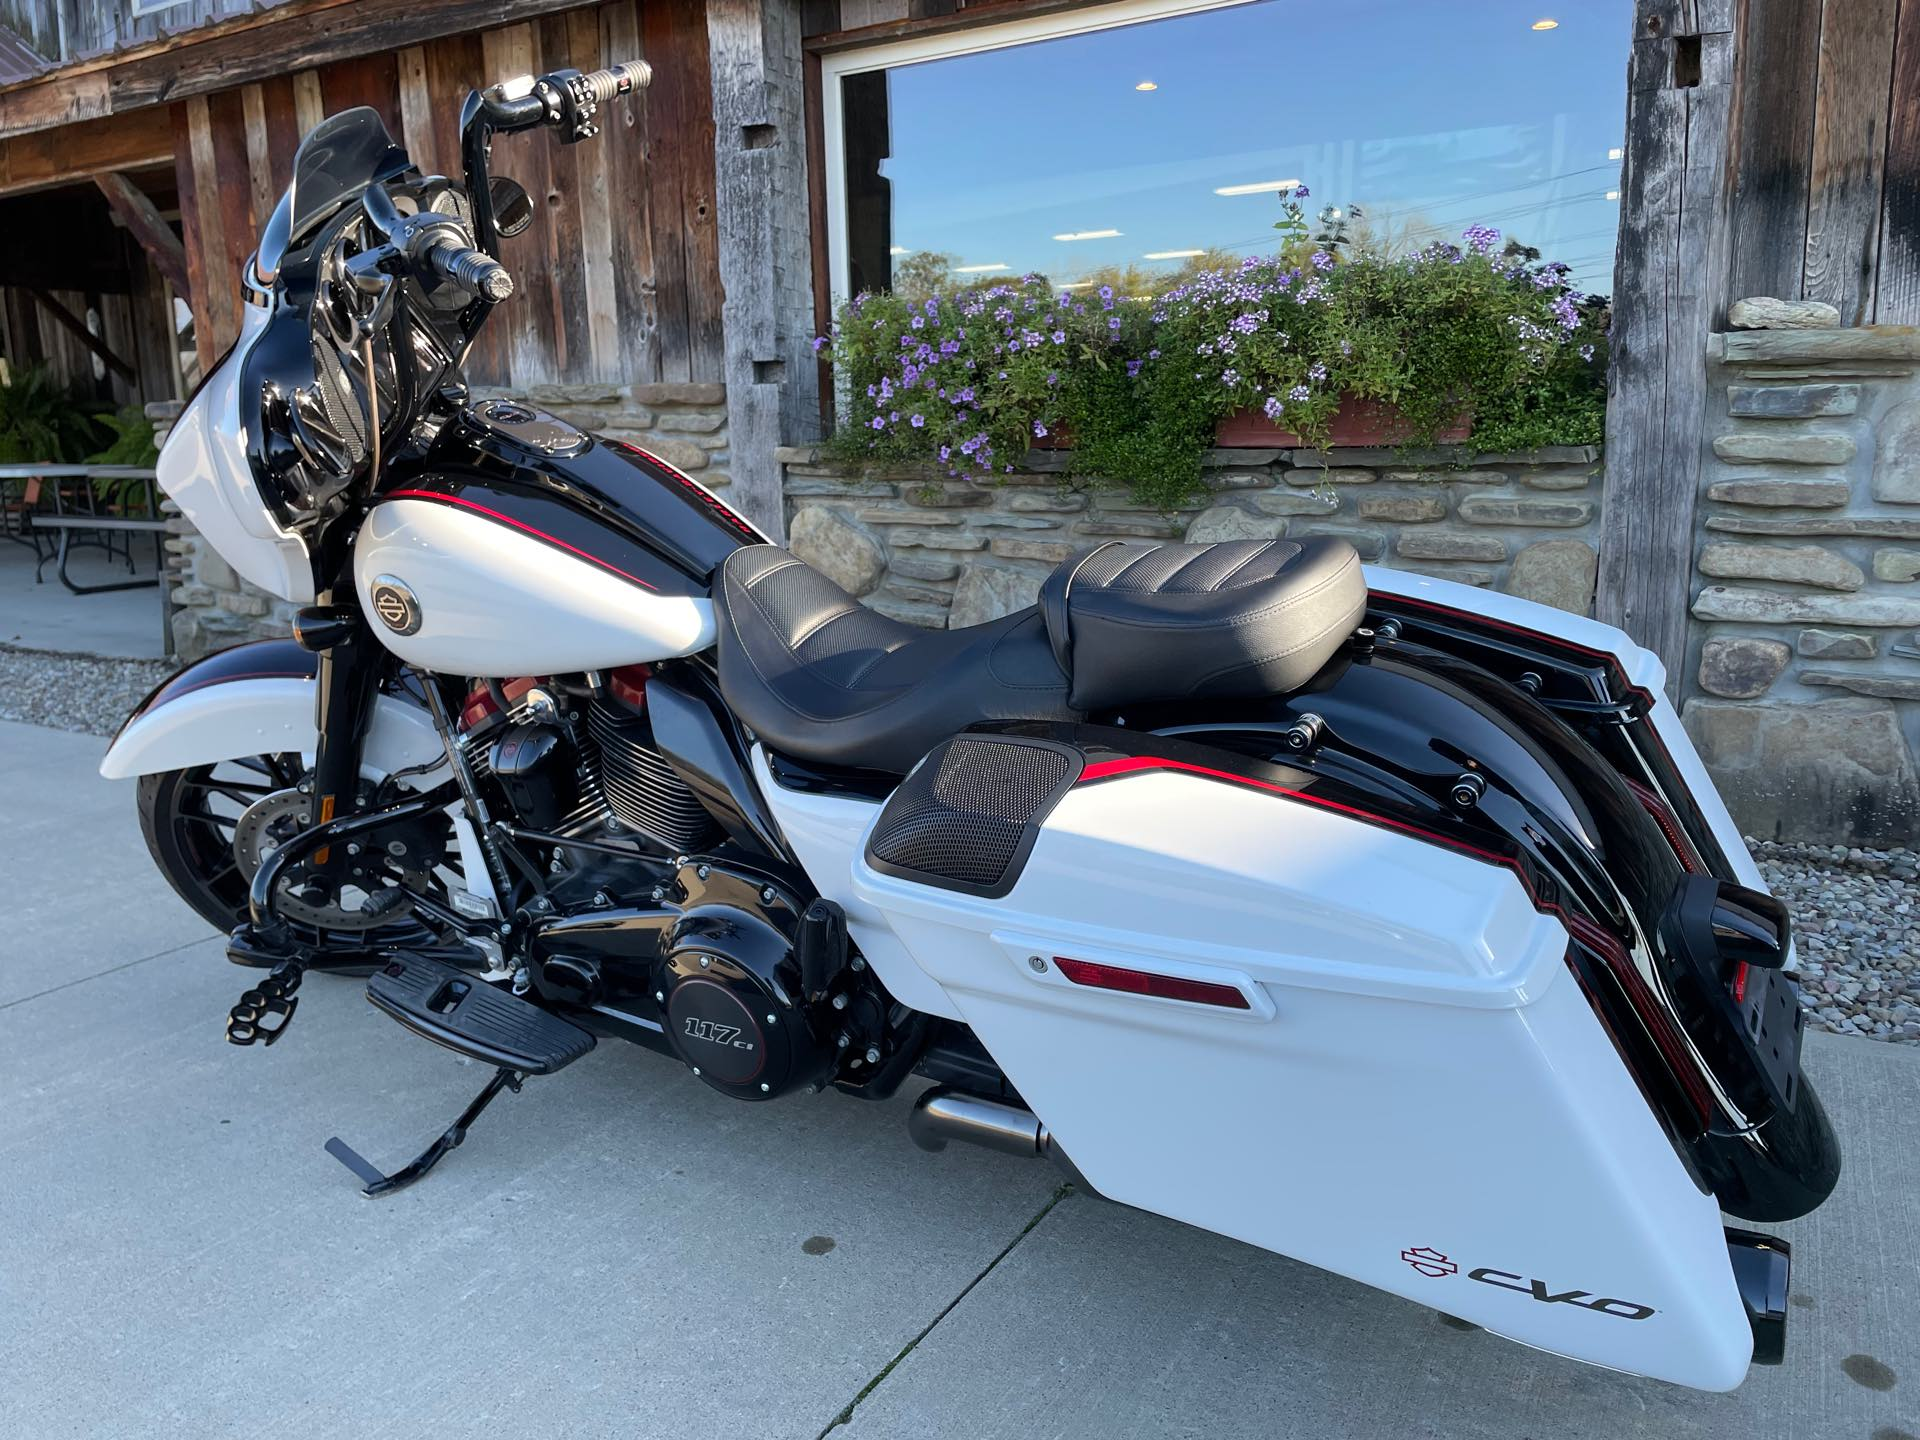 2021 Harley-Davidson Grand American Touring CVO Street Glide at Arkport Cycles